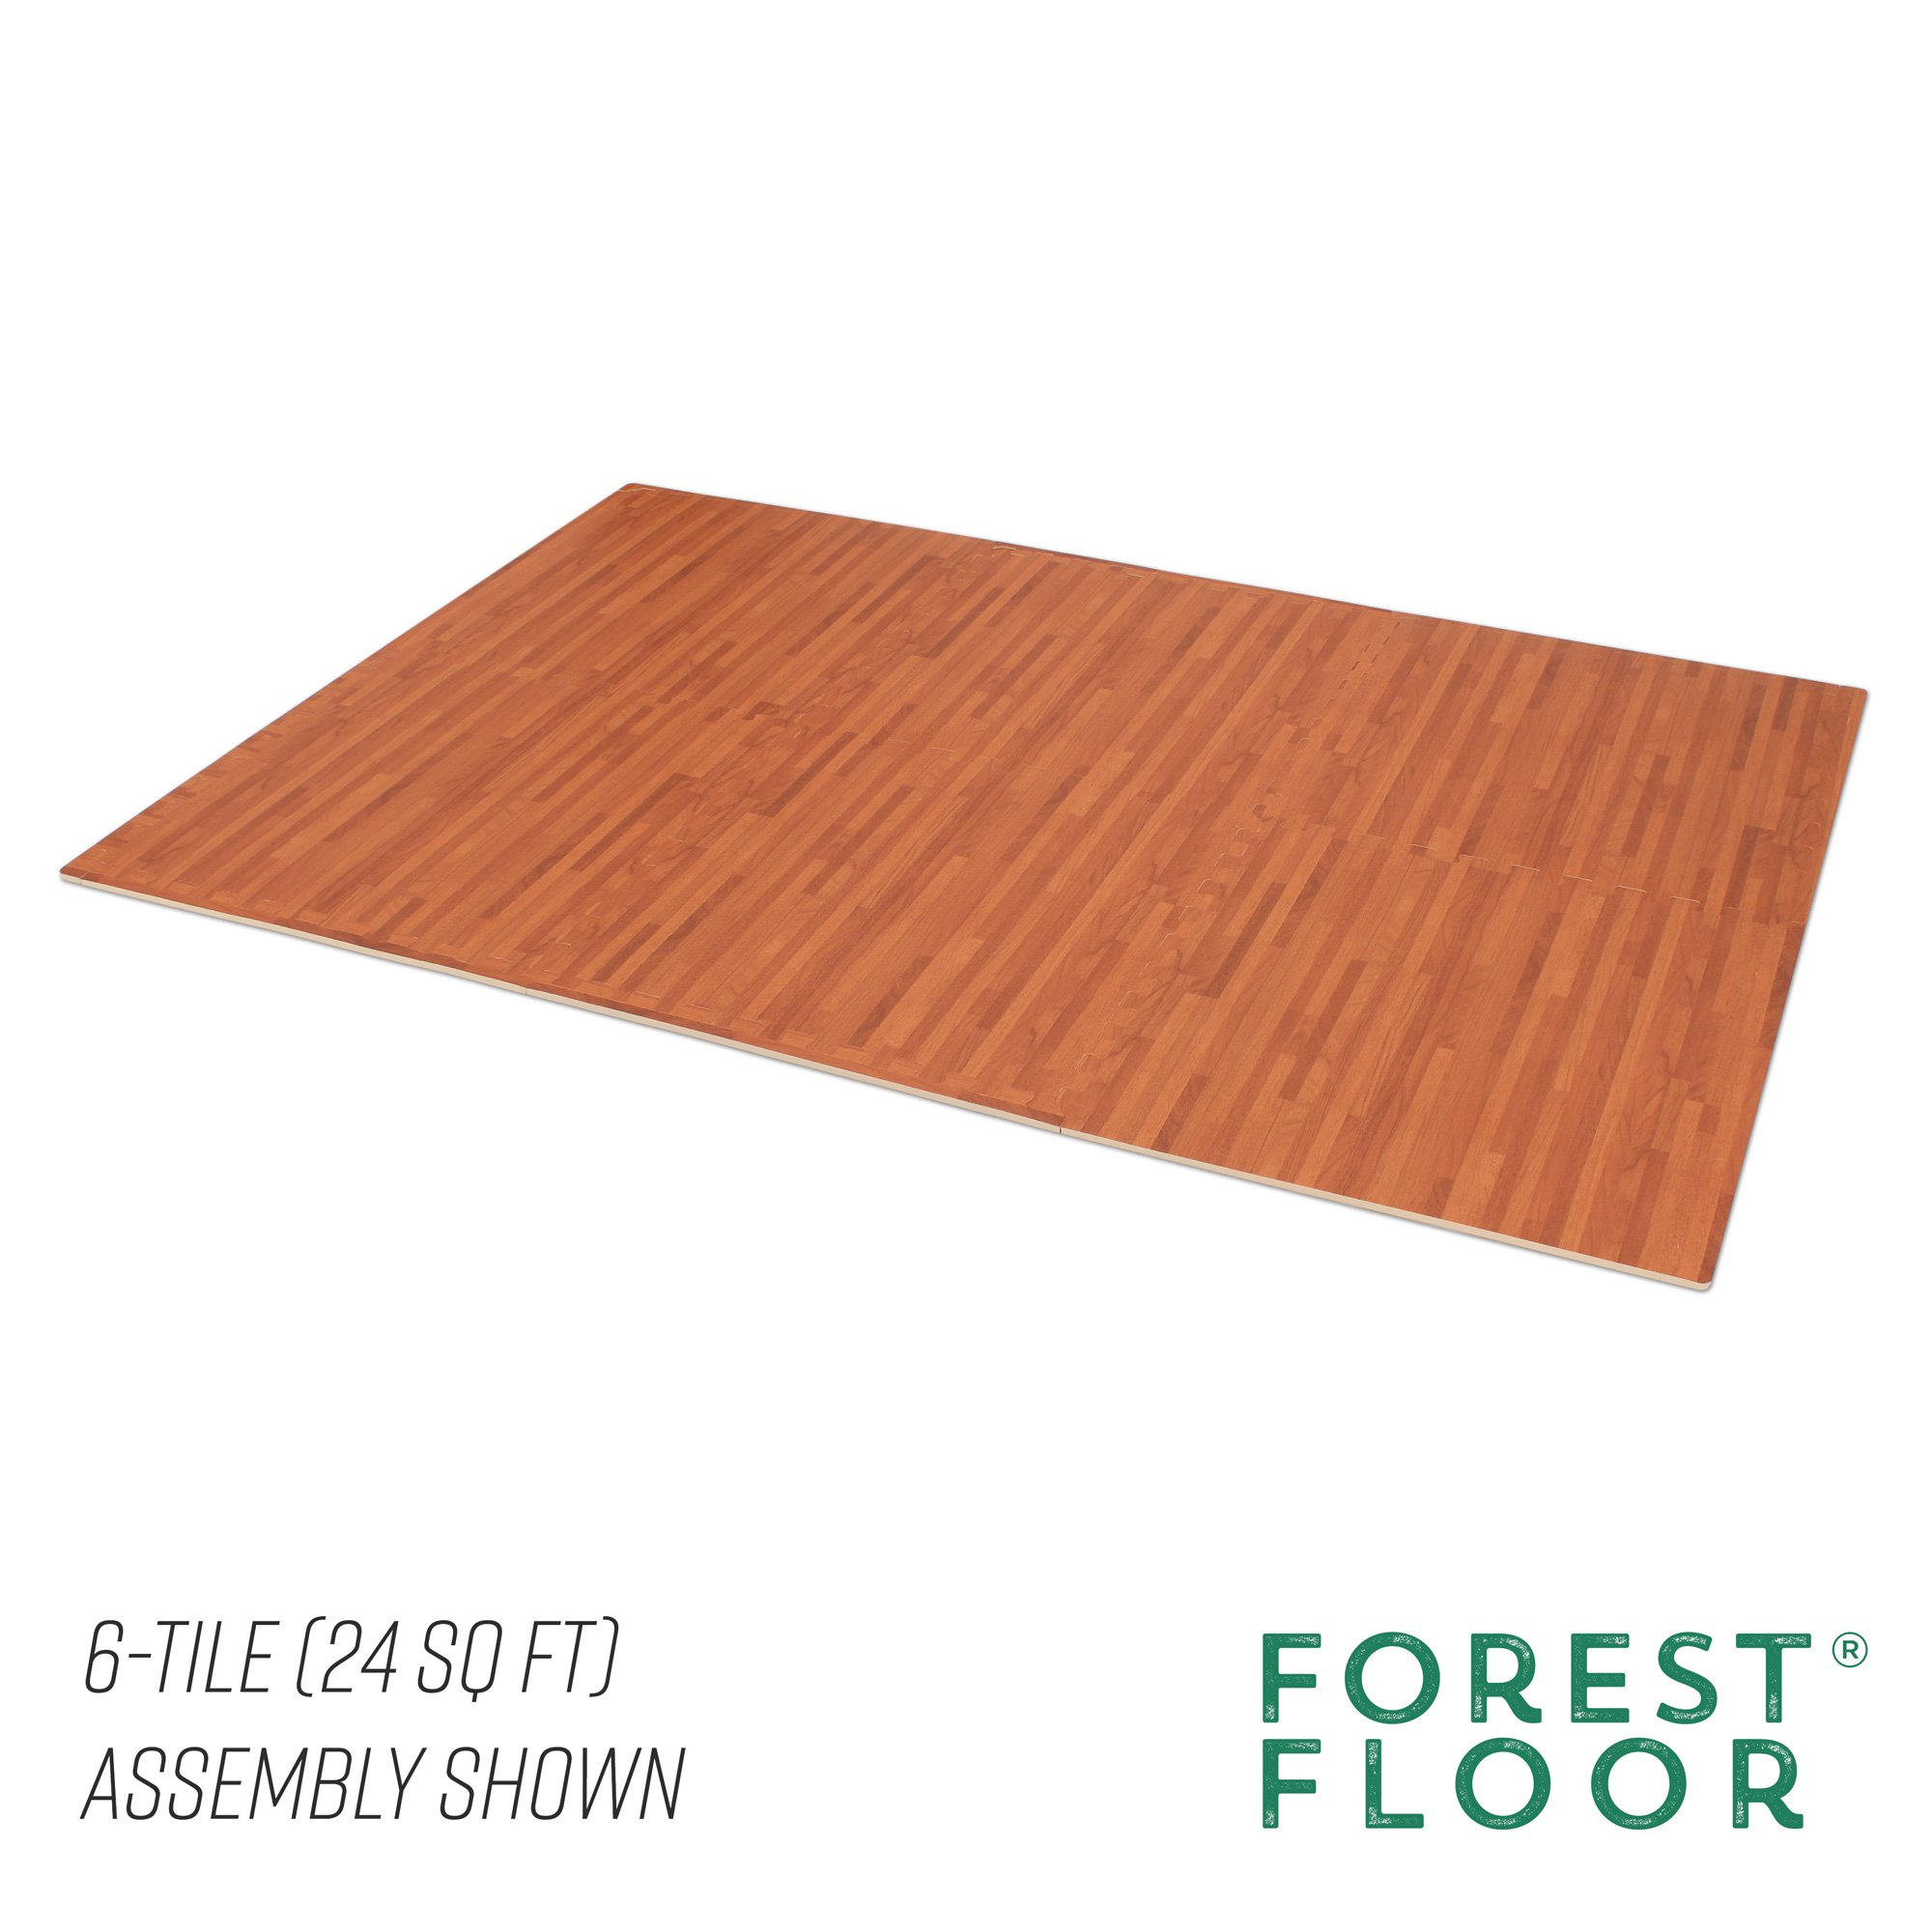 Forest Floor 3/8'' Thick Printed Wood Grain Interlocking Foam Floor Mats, 16 Sq Ft (4 Tiles), Mahogany by Forest Floor (Image #5)